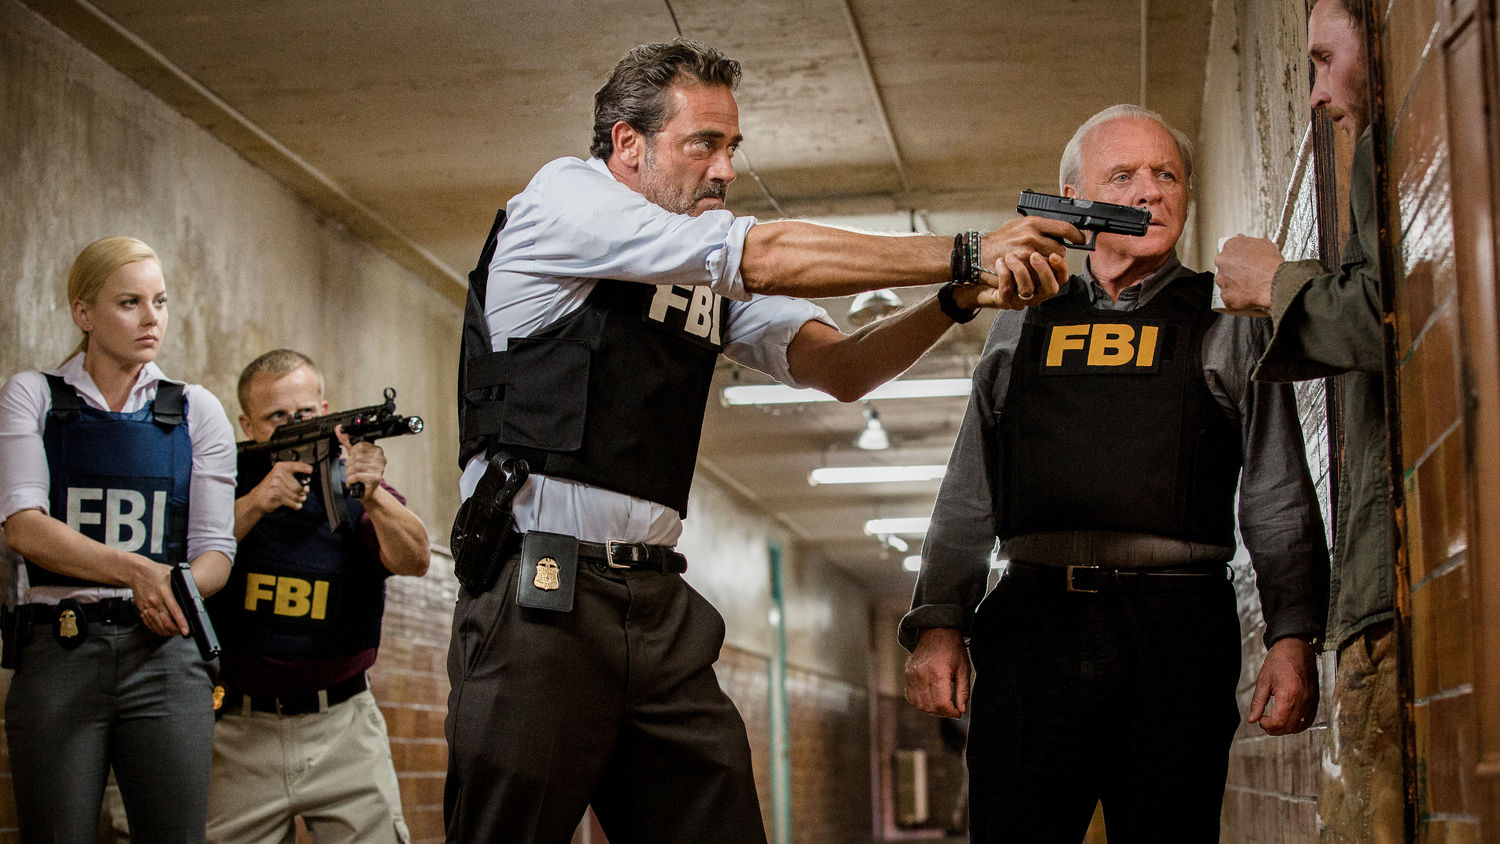 the life of an fbi agent Answers to commonly asked questions pertaining to the fbi a number of fbi agents have been designated as devastate families by wiping out their life.